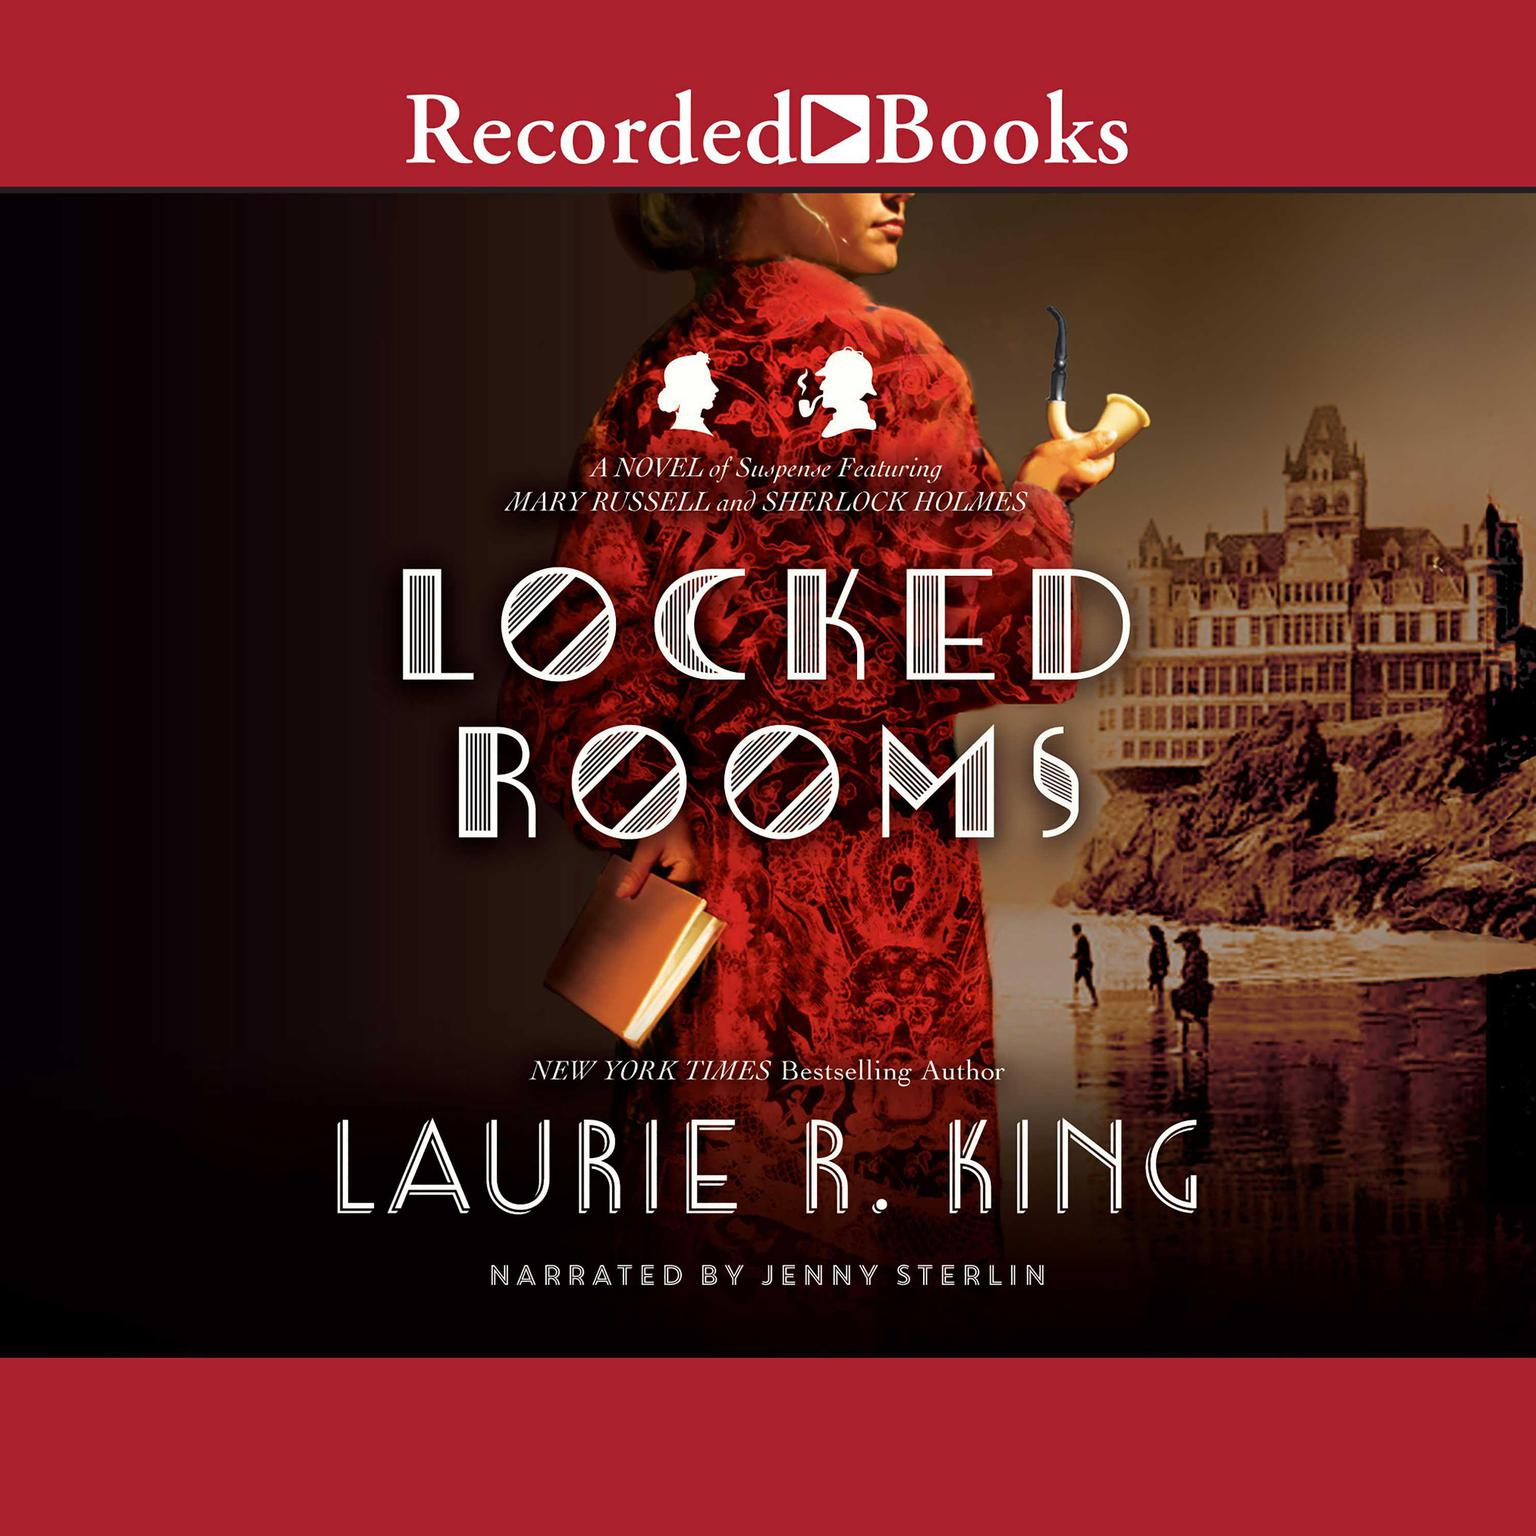 Printable Locked Rooms: A Novel of Suspense Featuring Mary Russell and Sherlock Holmes Audiobook Cover Art